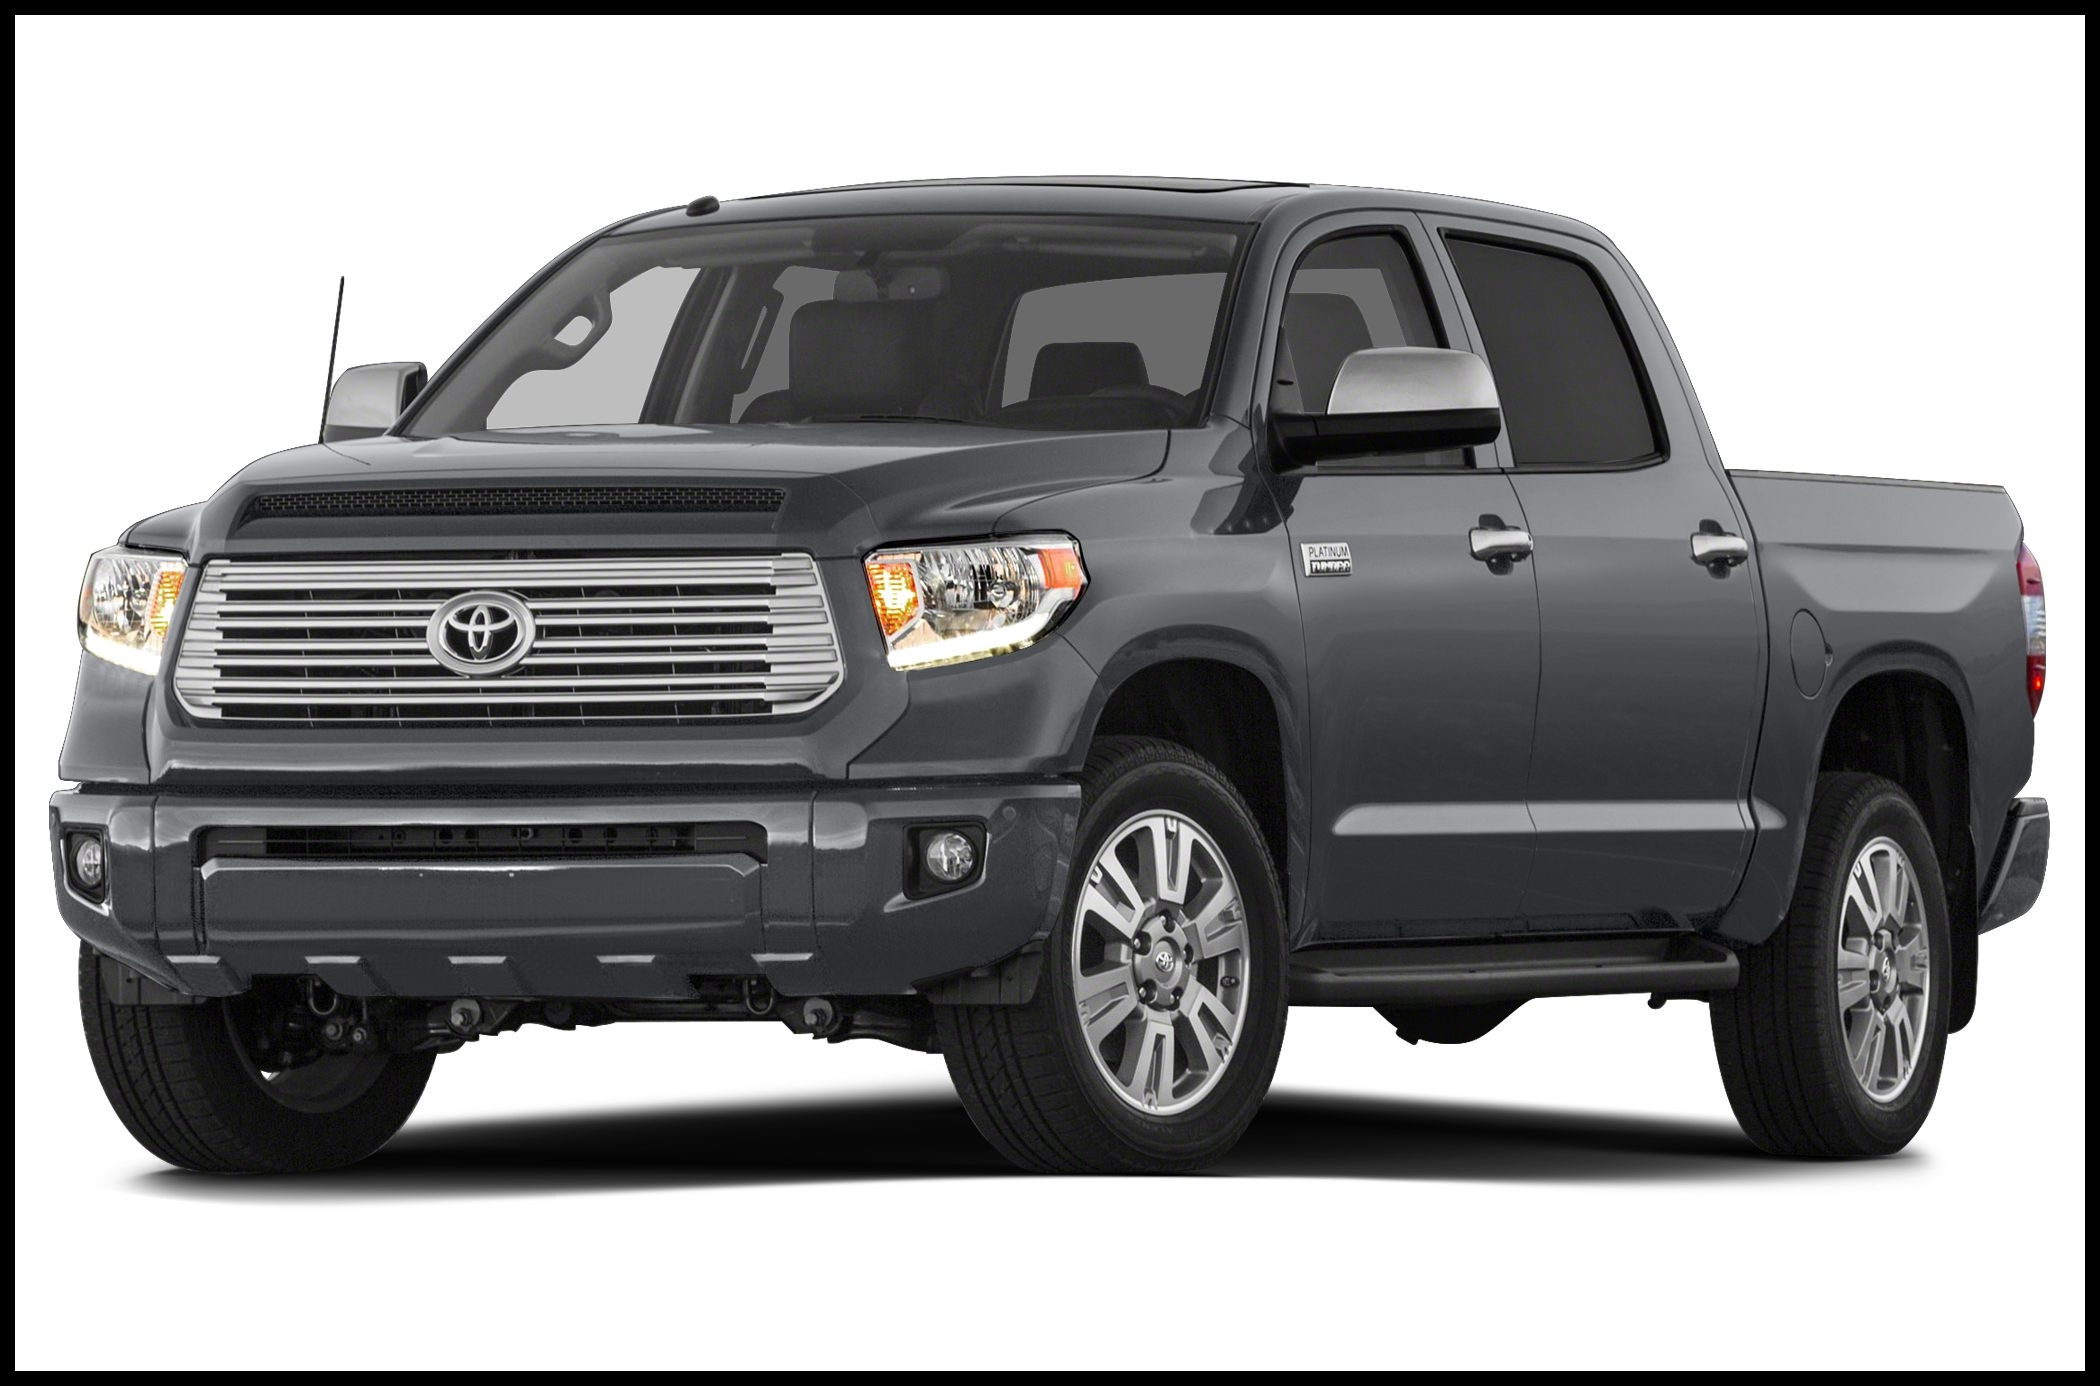 News 2015 ford F 150 Vs 2015 Nissan Titan and 2015 toyota Tundra Overview Reviews and